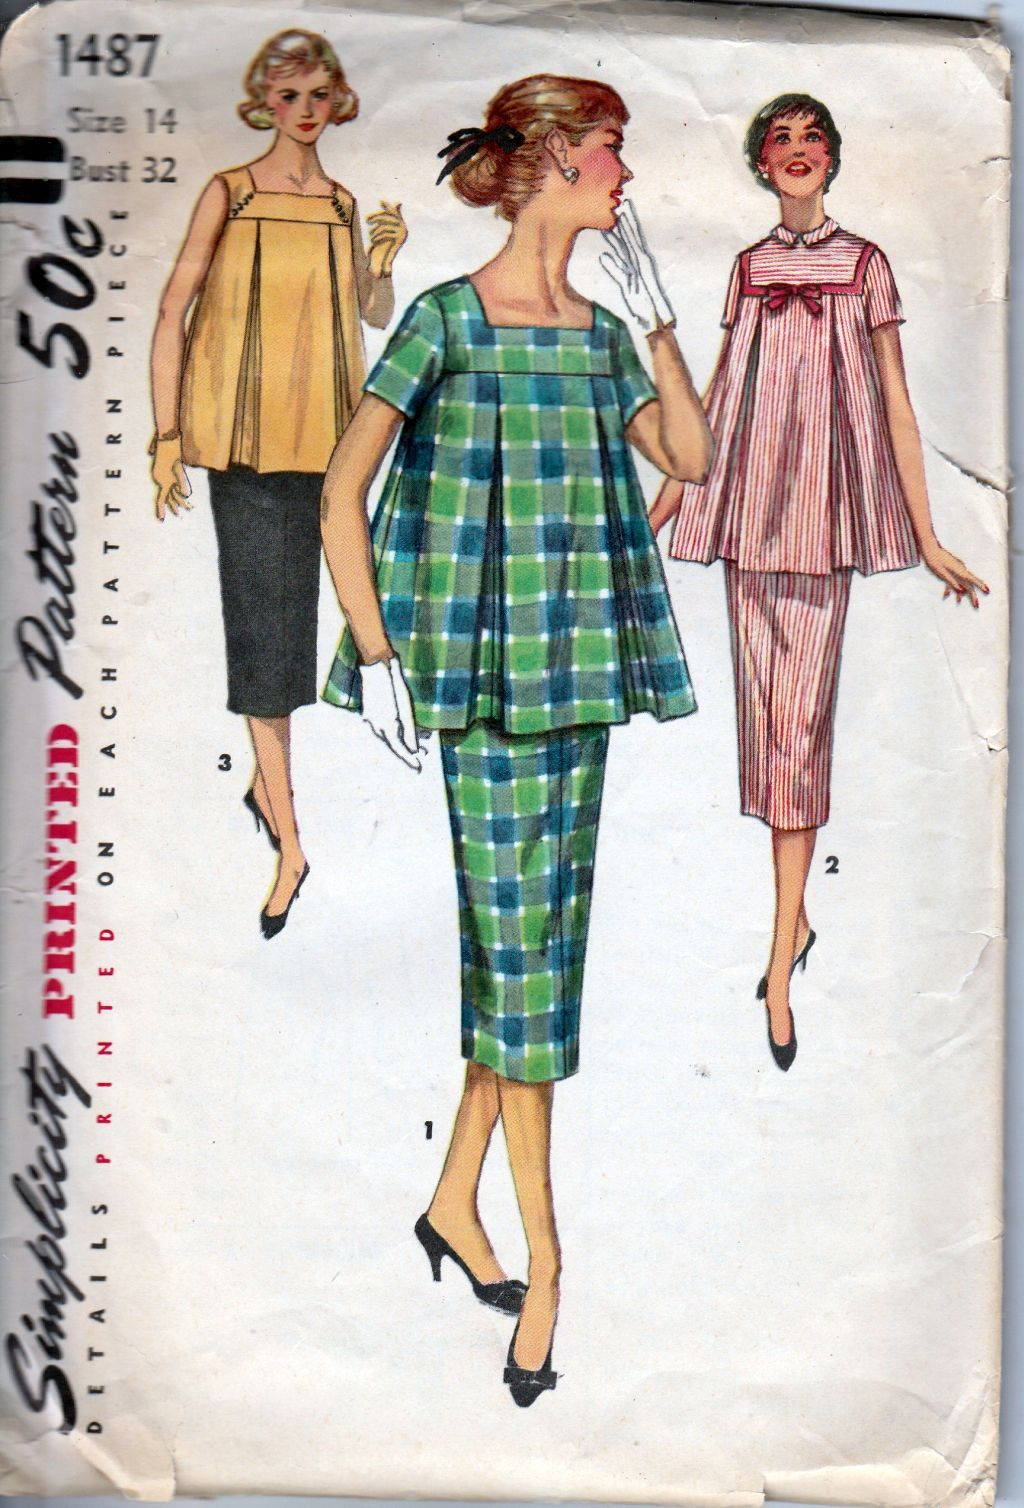 Simplicity 1487 Ladies Two Piece Maternity Dress Vintage Sewing Pattern 1950's - VintageStitching - Vintage Sewing Patterns